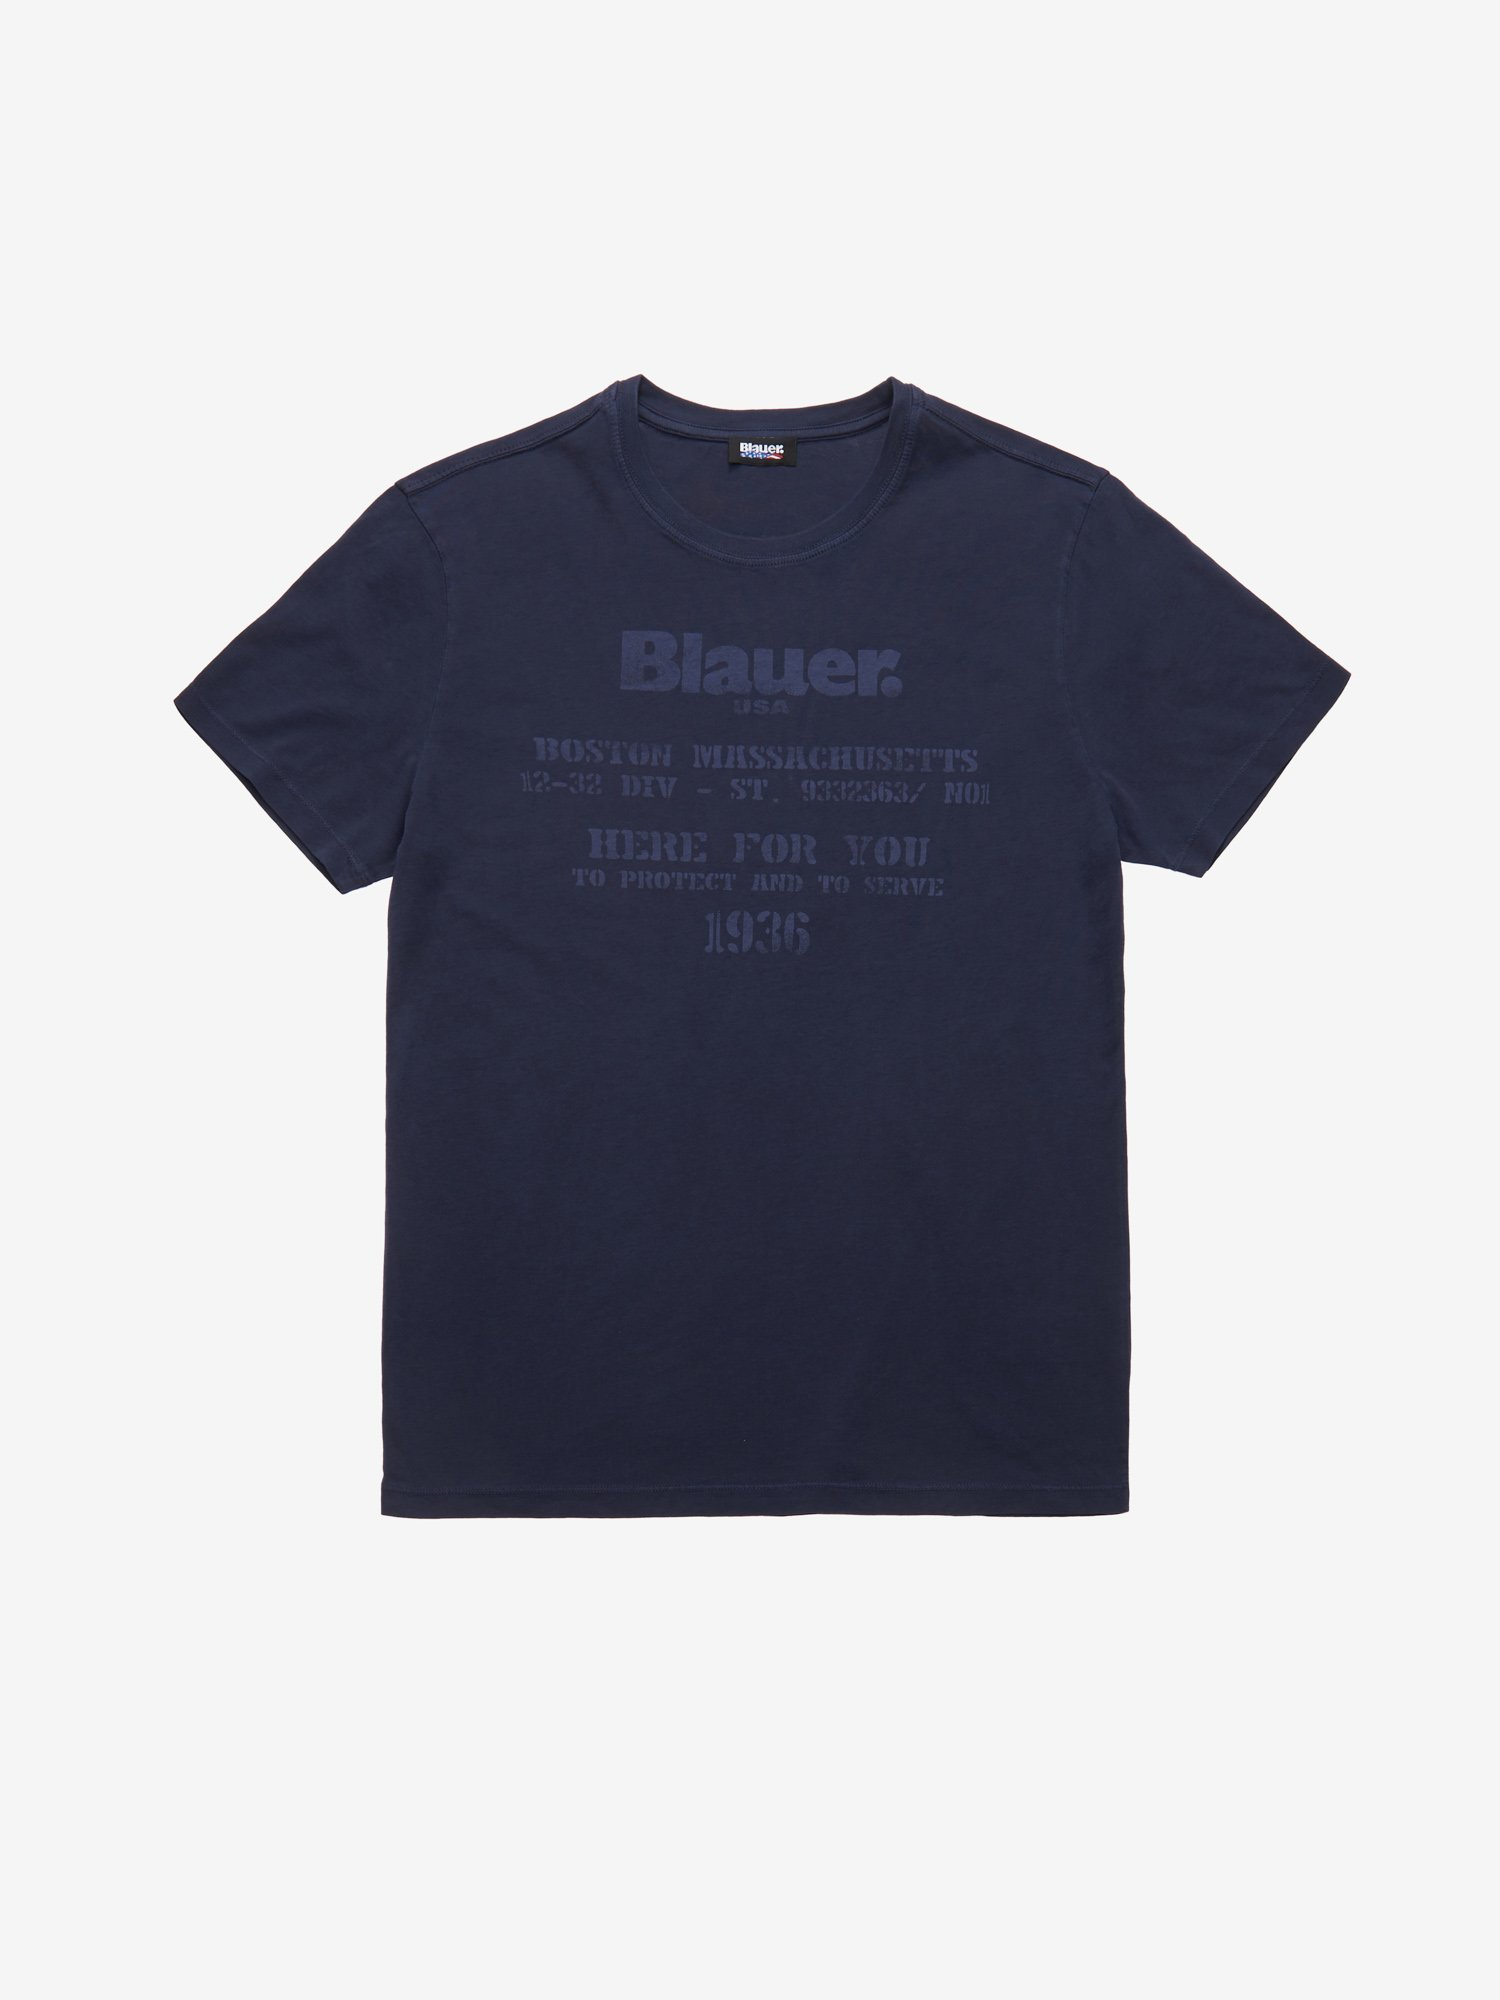 T-SHIRT PROTECT AND SERVE - Blauer